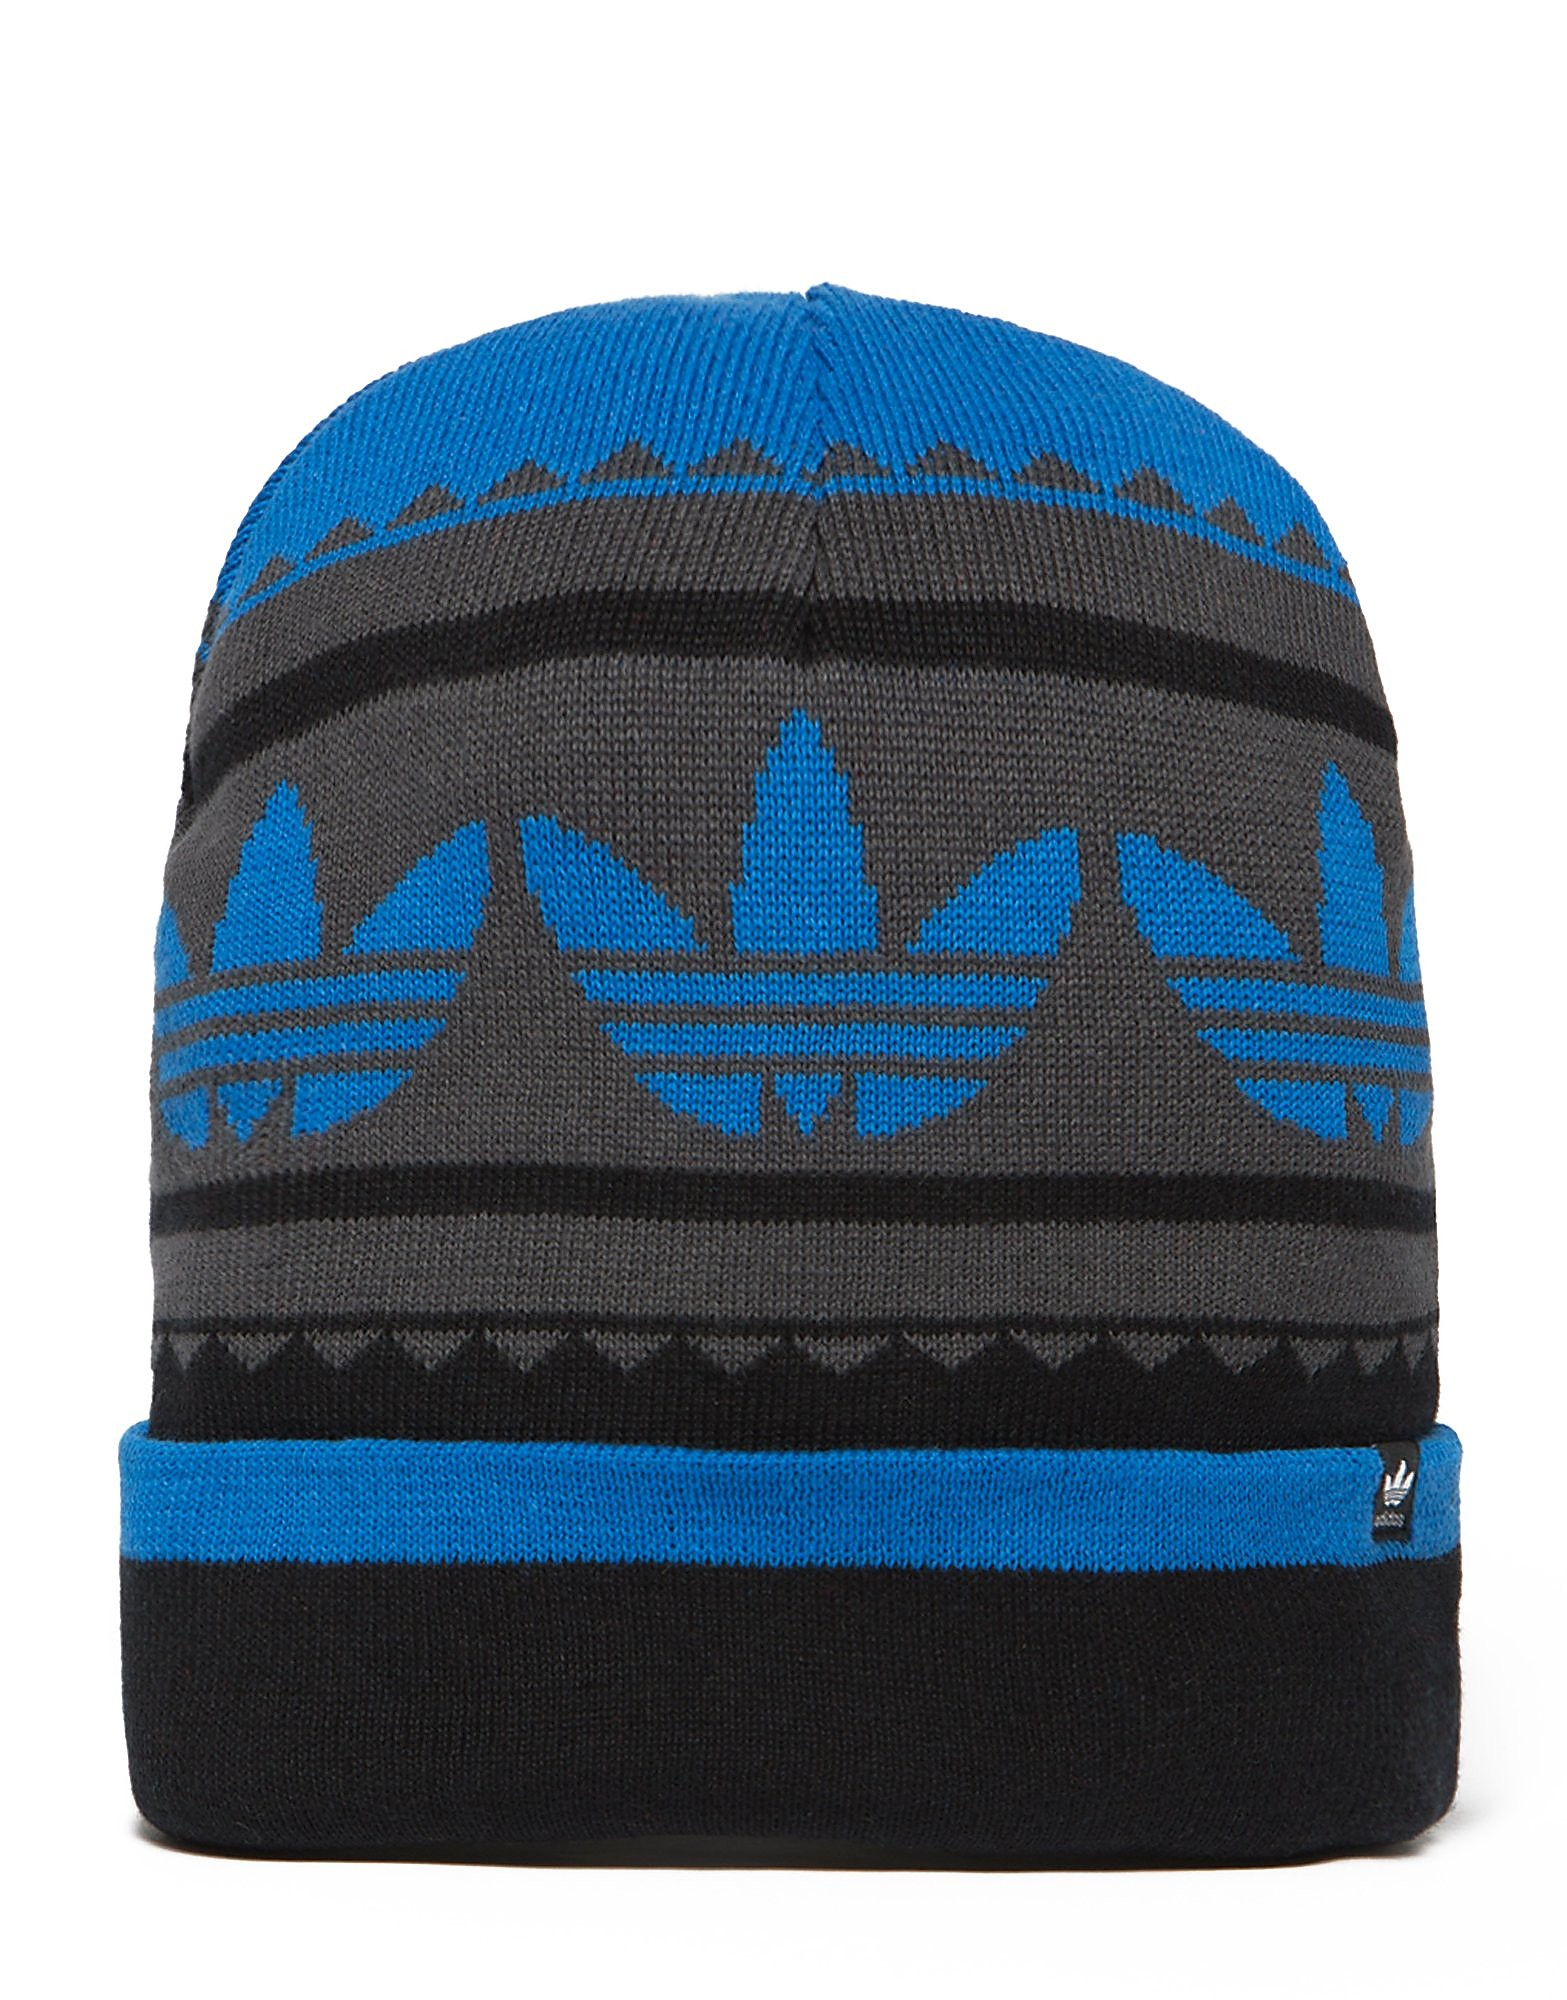 adidas Originals Muts met patroon